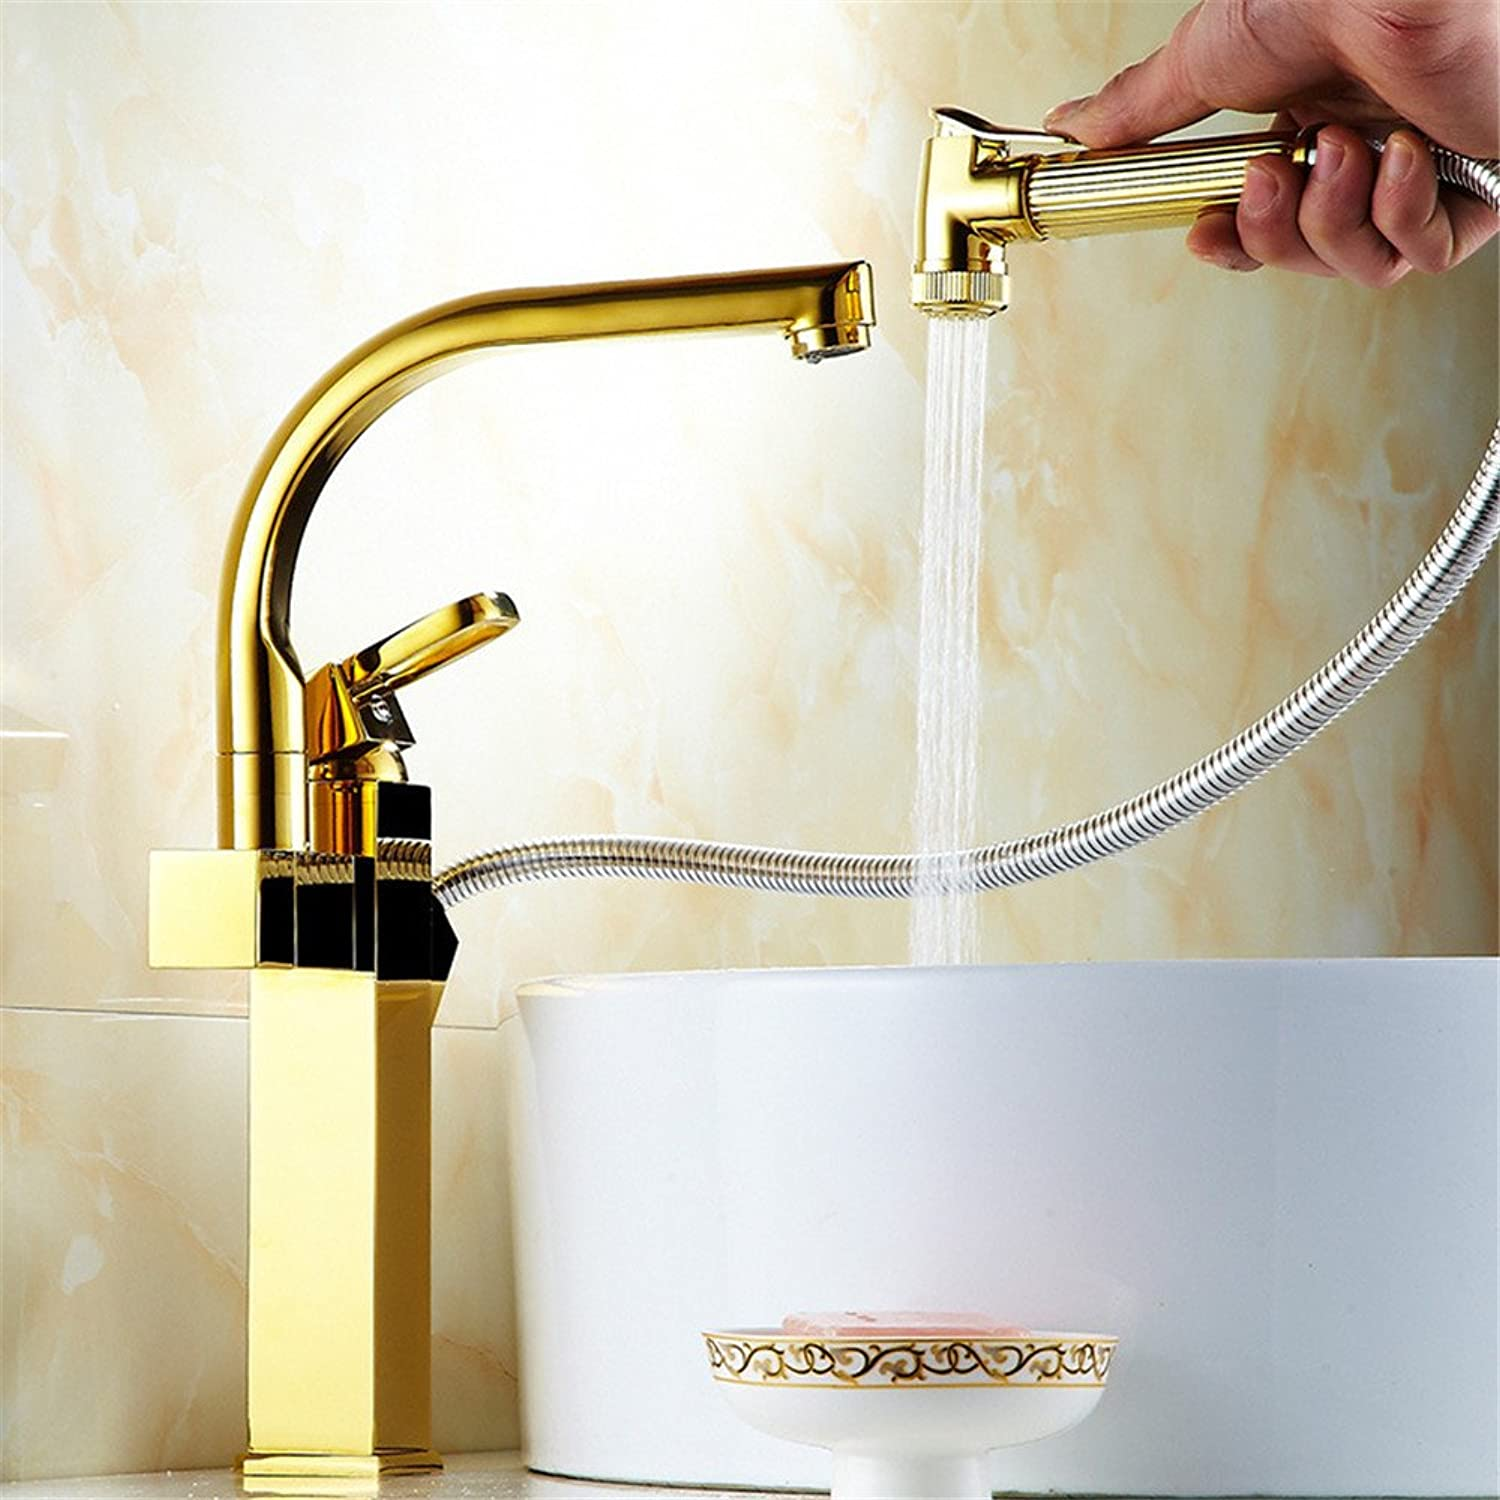 Bijjaladeva Antique Bathroom Sink Vessel Faucet Basin Mixer Tap Back-up kitchen faucet gold plated hot and cold water mixing valve single-basin mixer brass low lead faucets